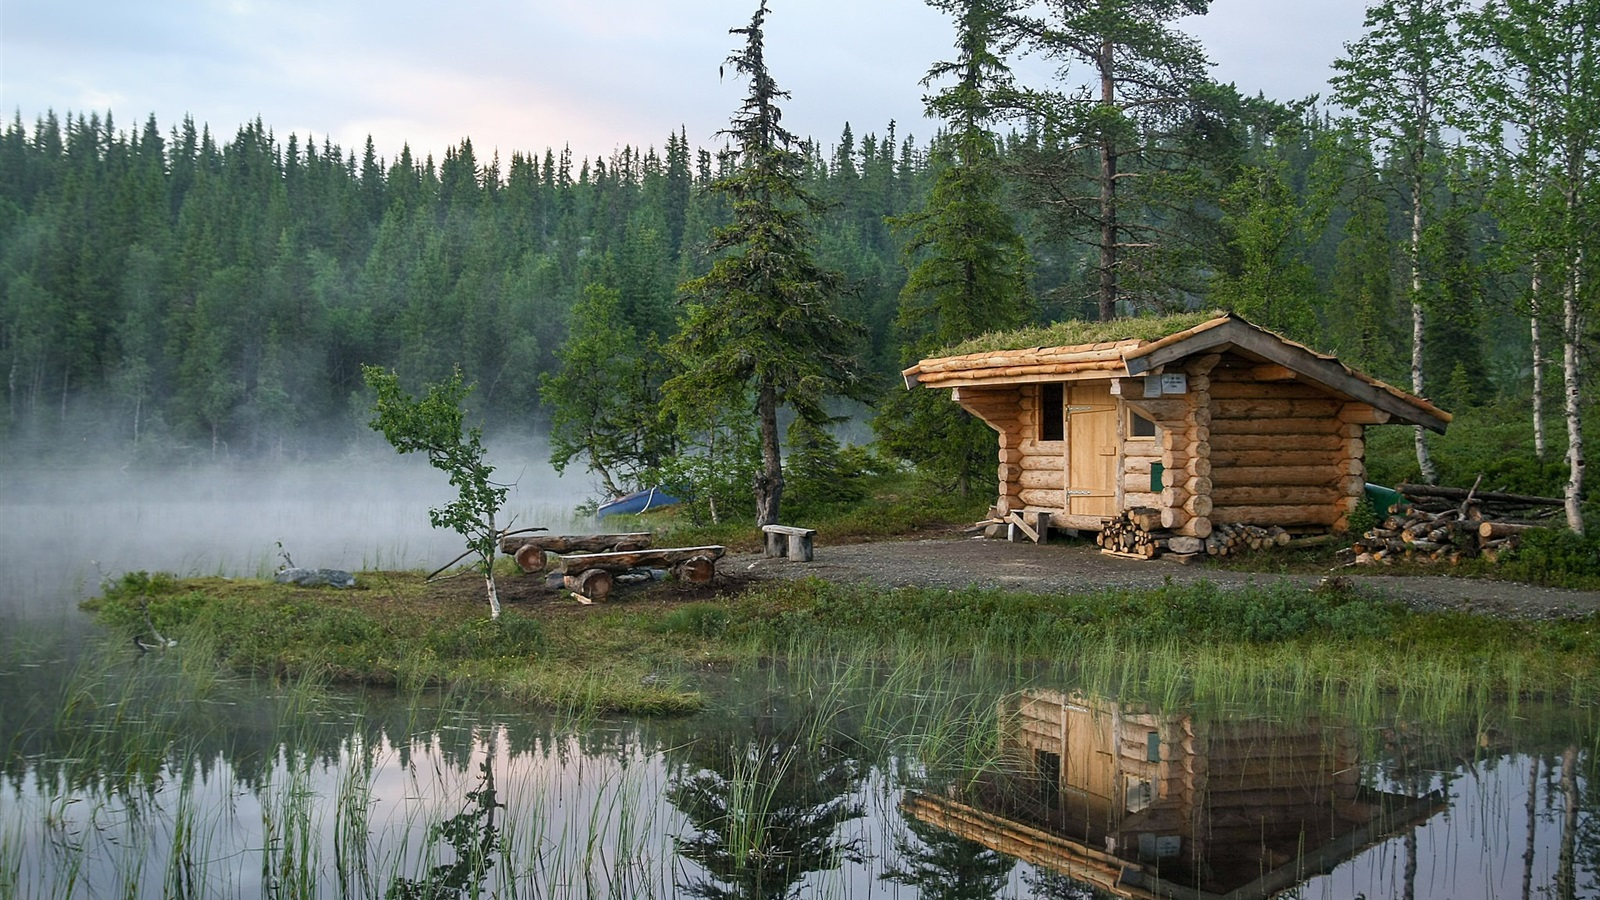 Wallpaper Norway Forest Trees Lake Hut Water